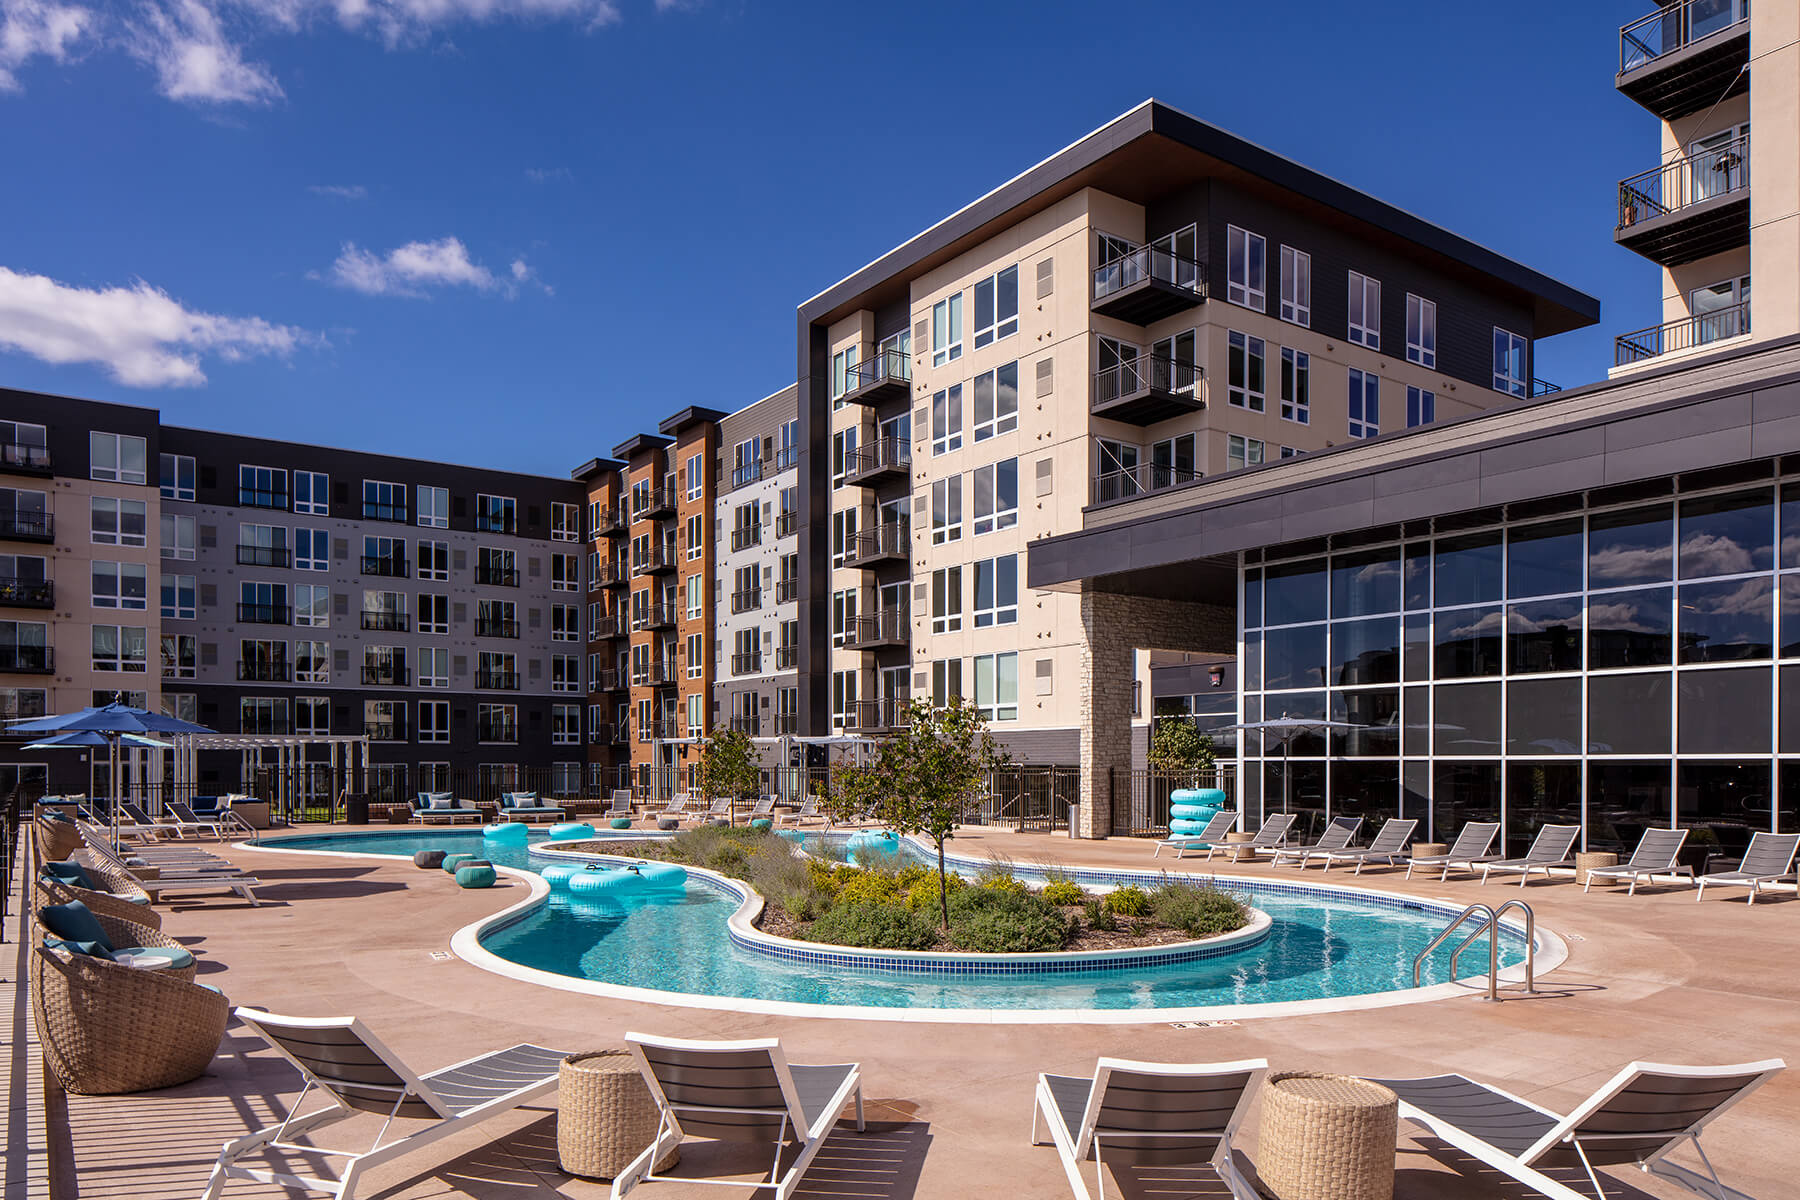 Minneapolis Luxury Apartments for Rent Photo of  FLOAT: MSP's only Lazy River pool - Lifestyles of the chill & active